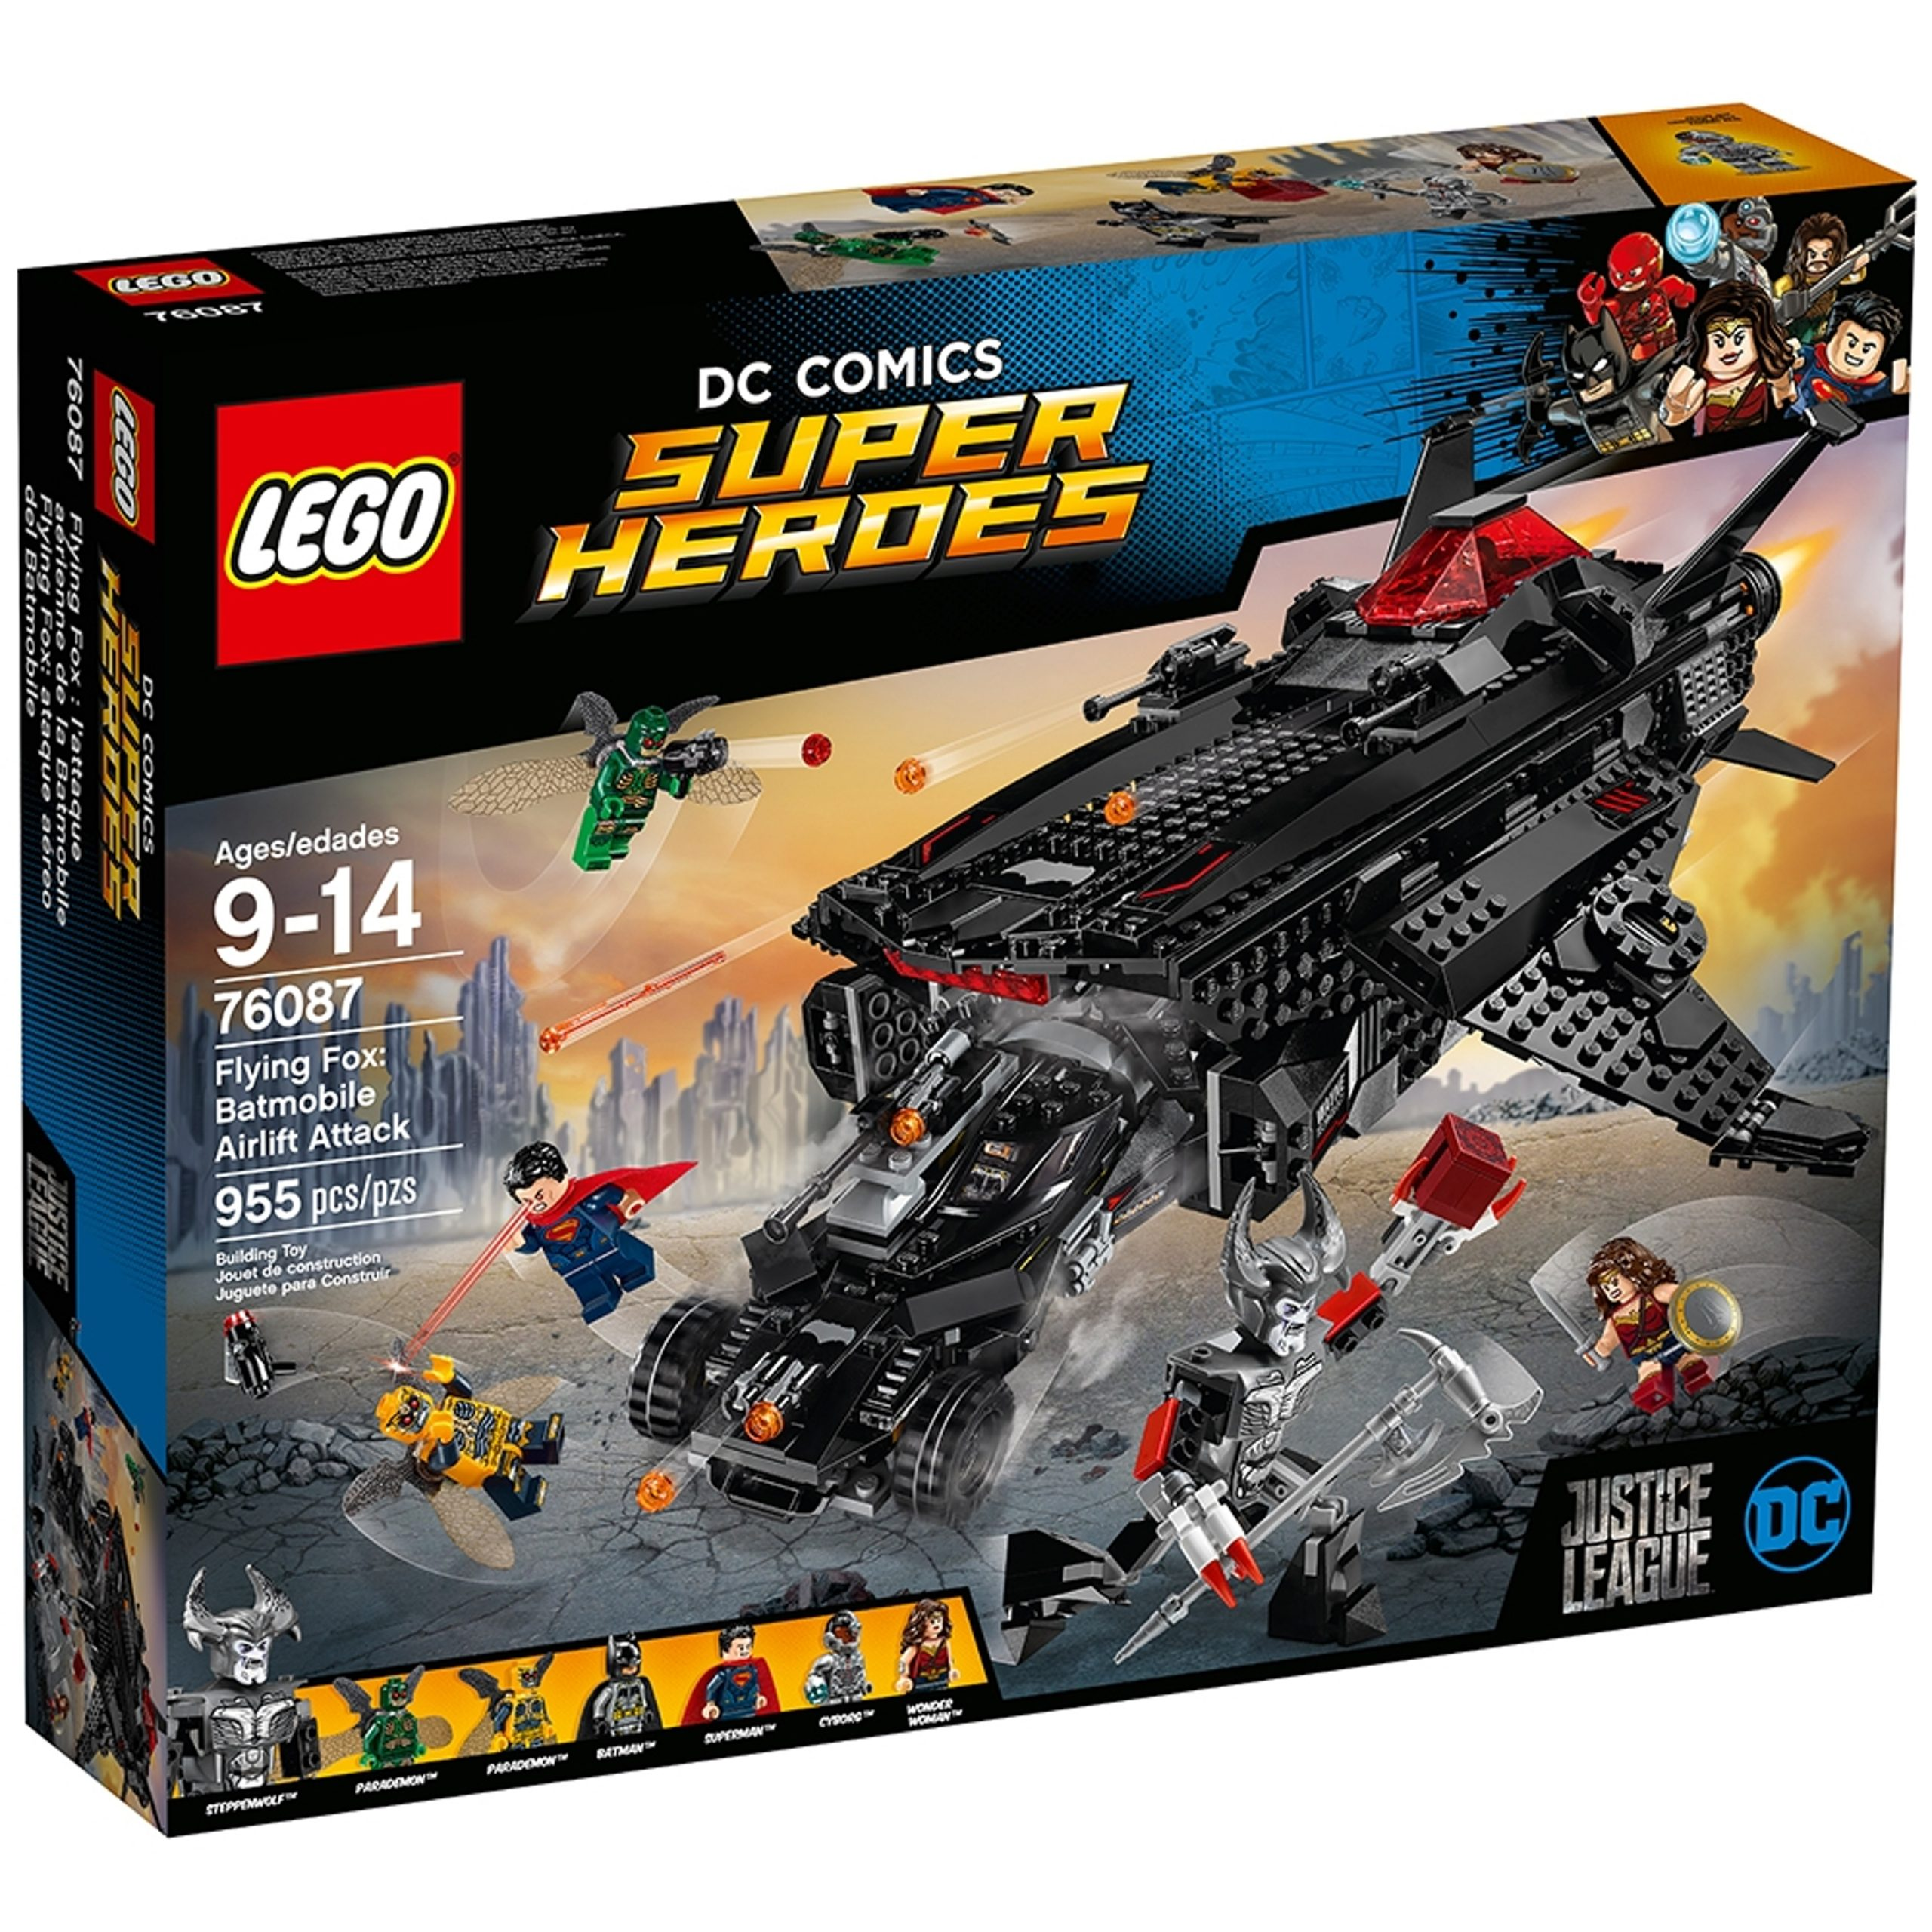 lego 76087 flying fox batmobile airlift attack scaled